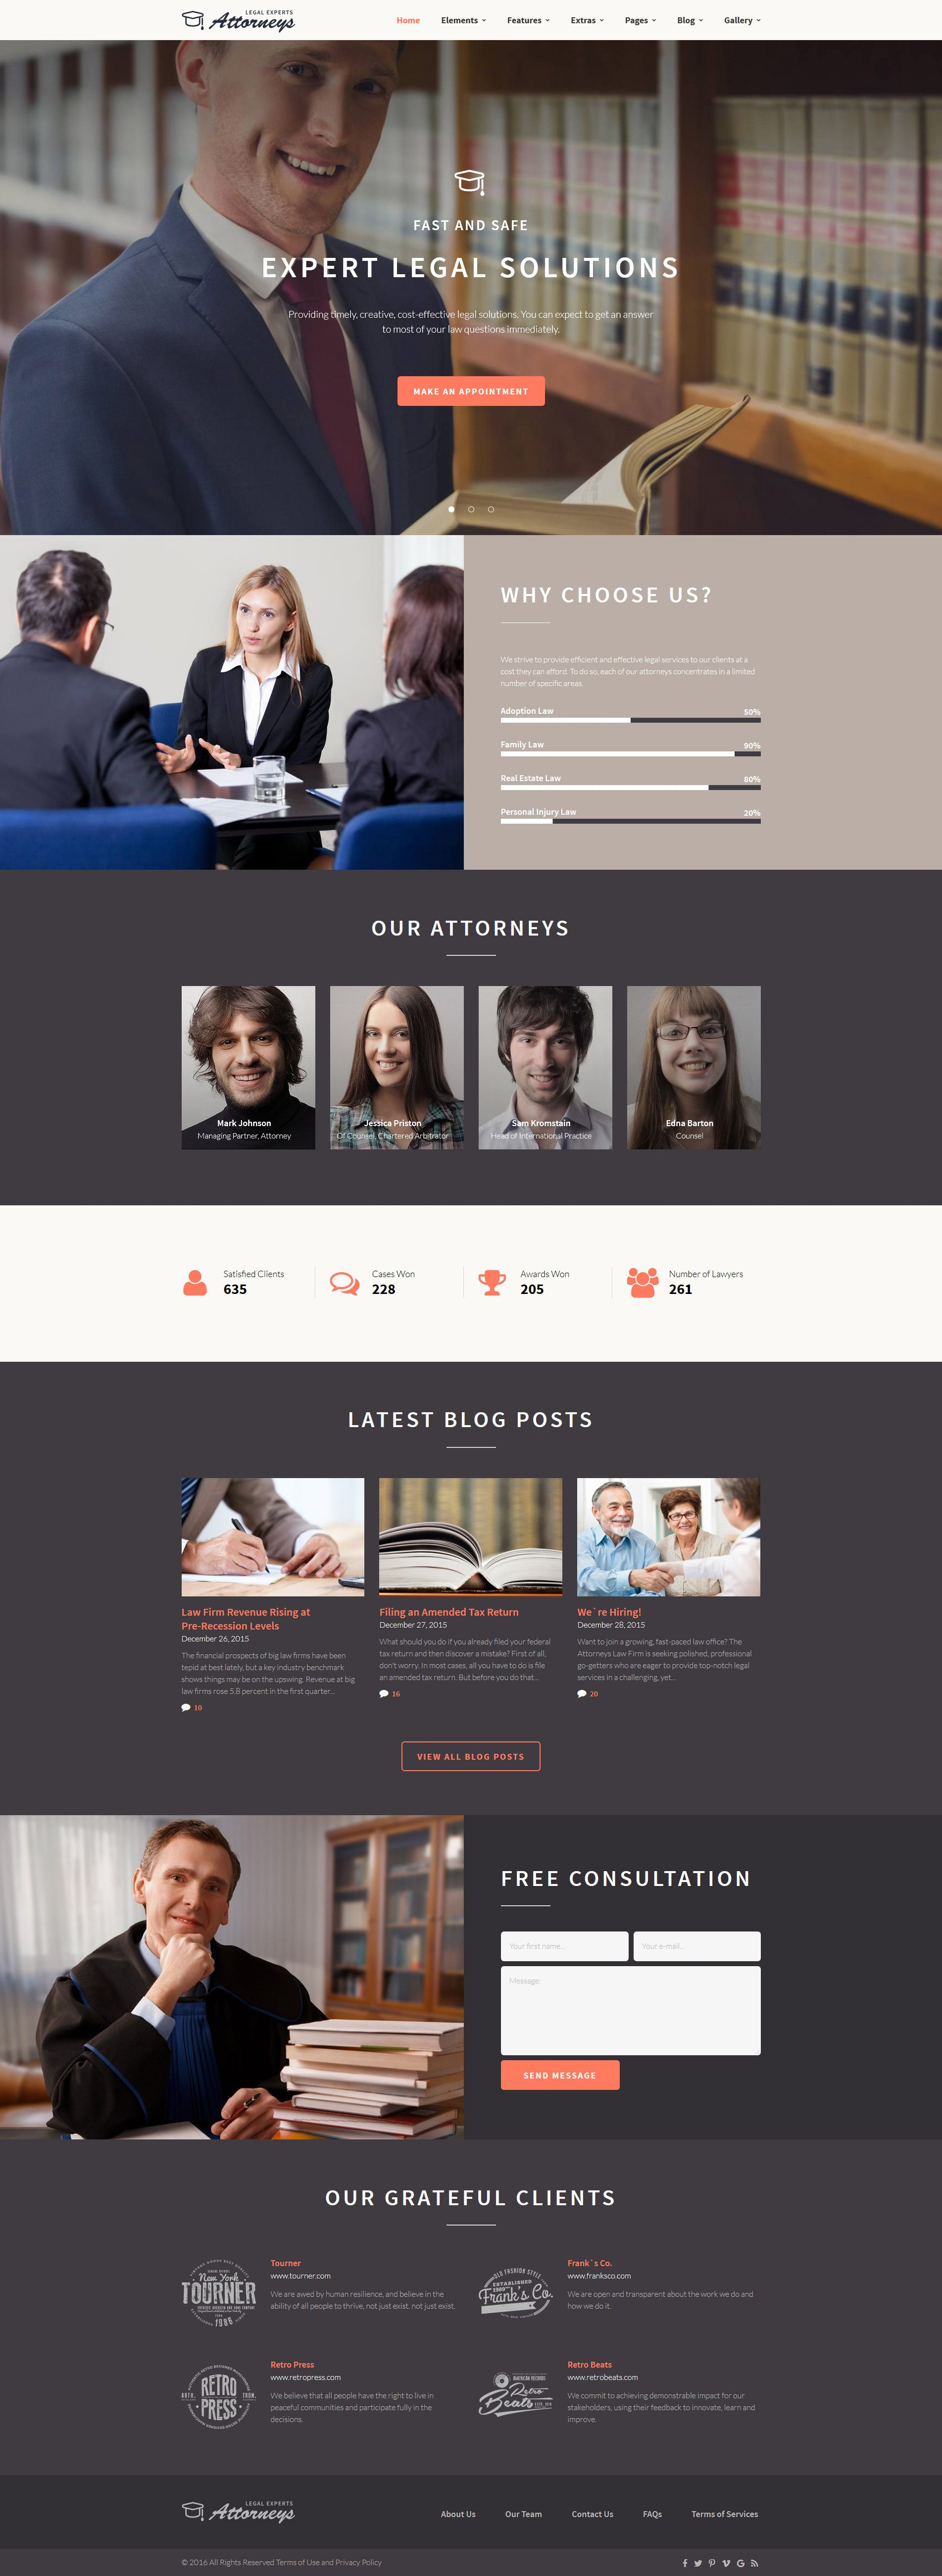 Law Firm Responsive Website Template | Template, Website and Law web